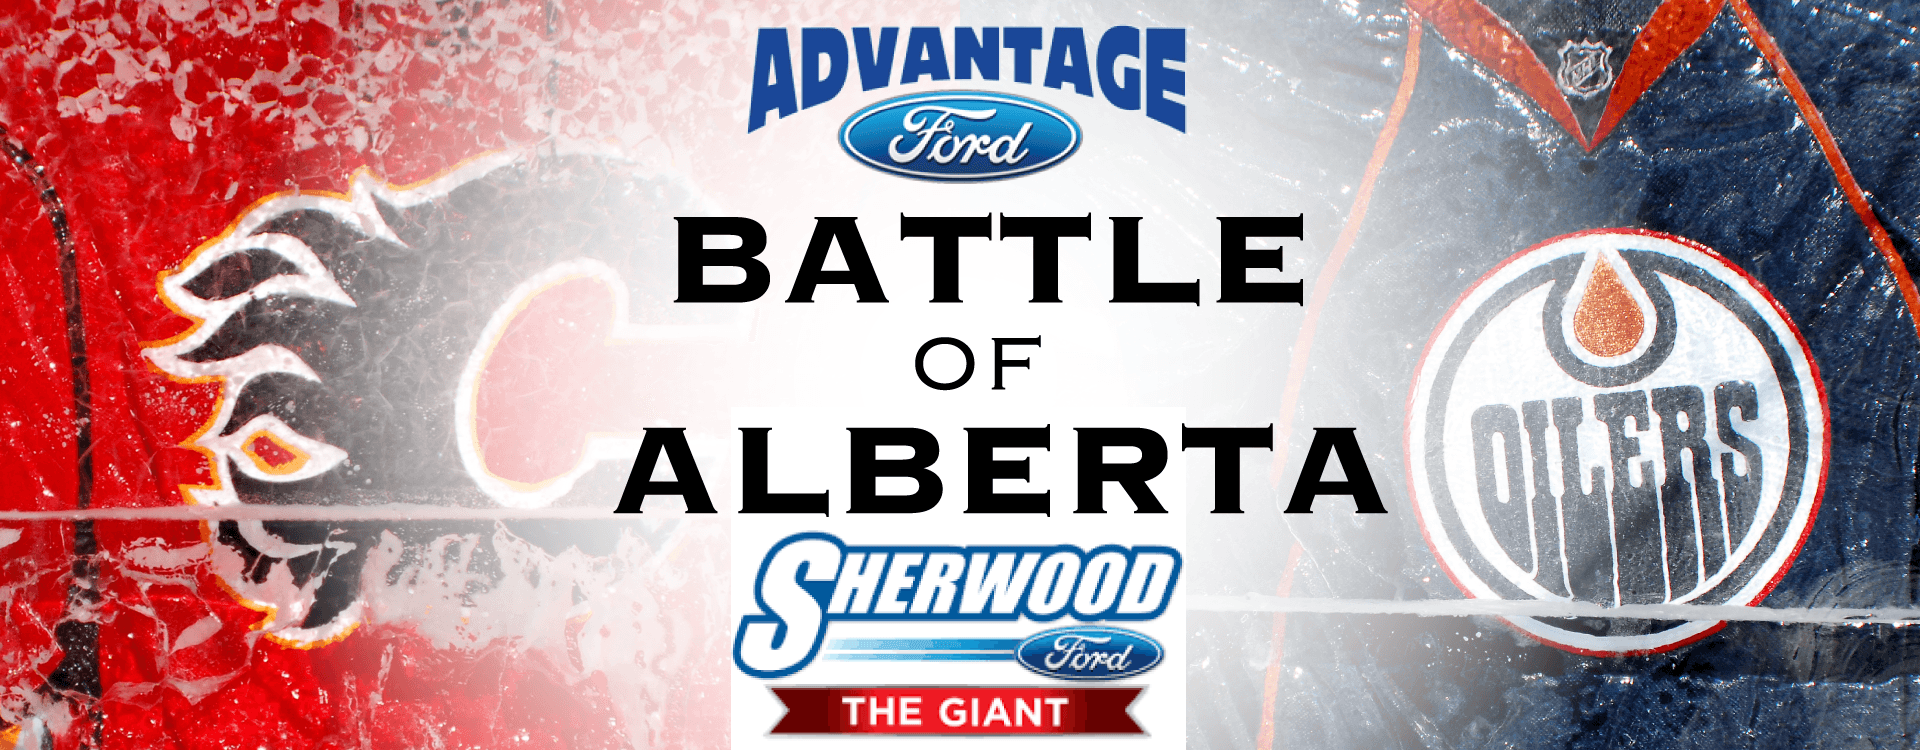 banner-battle-of-alberta---sherwood-ford